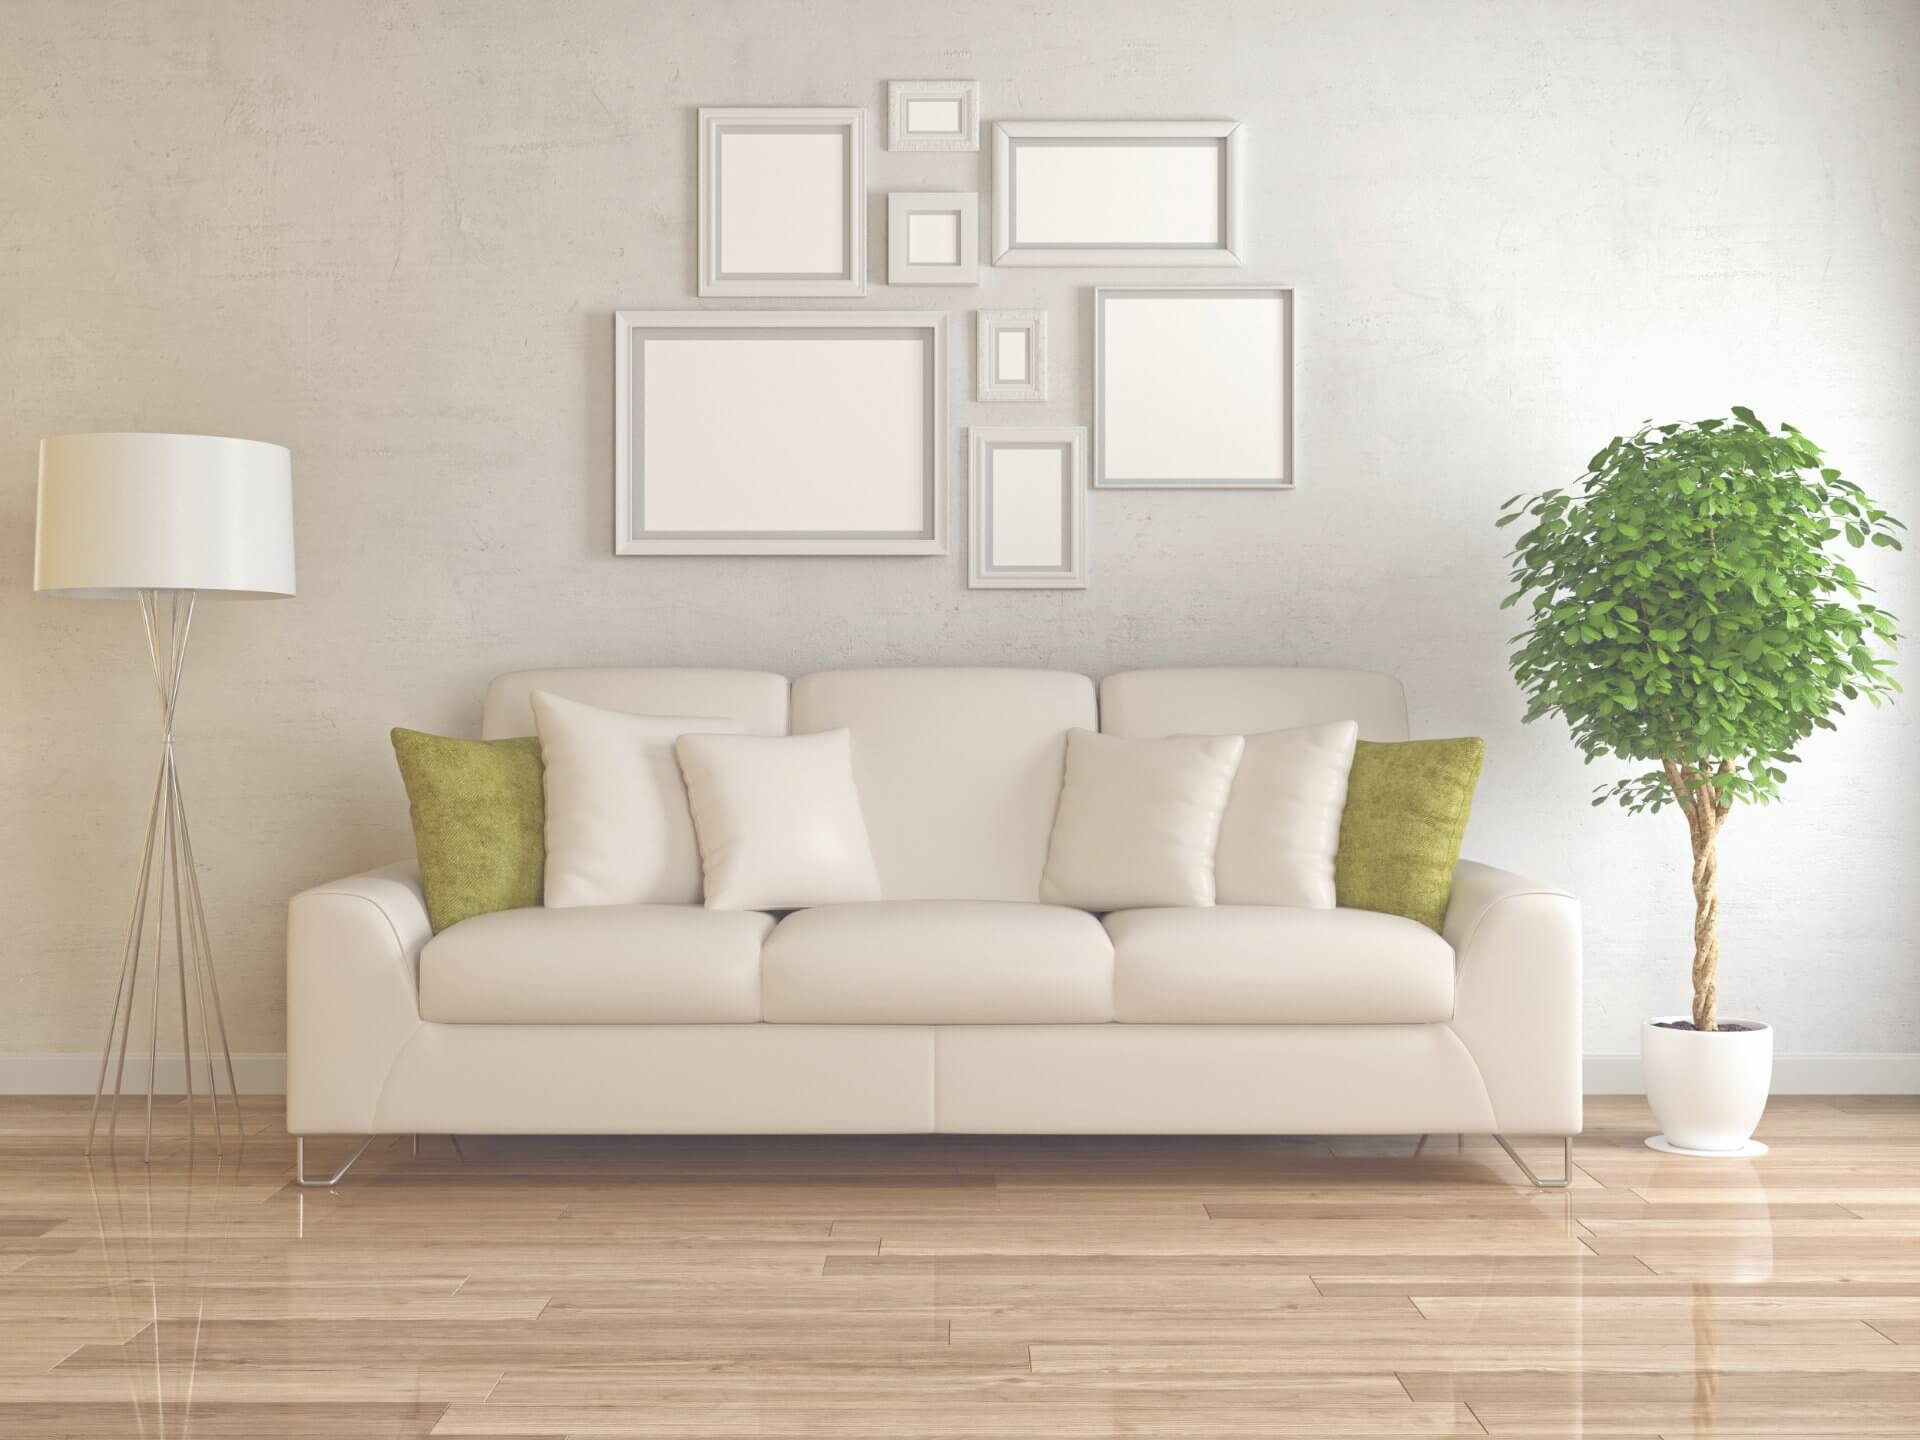 Couch Rental Products